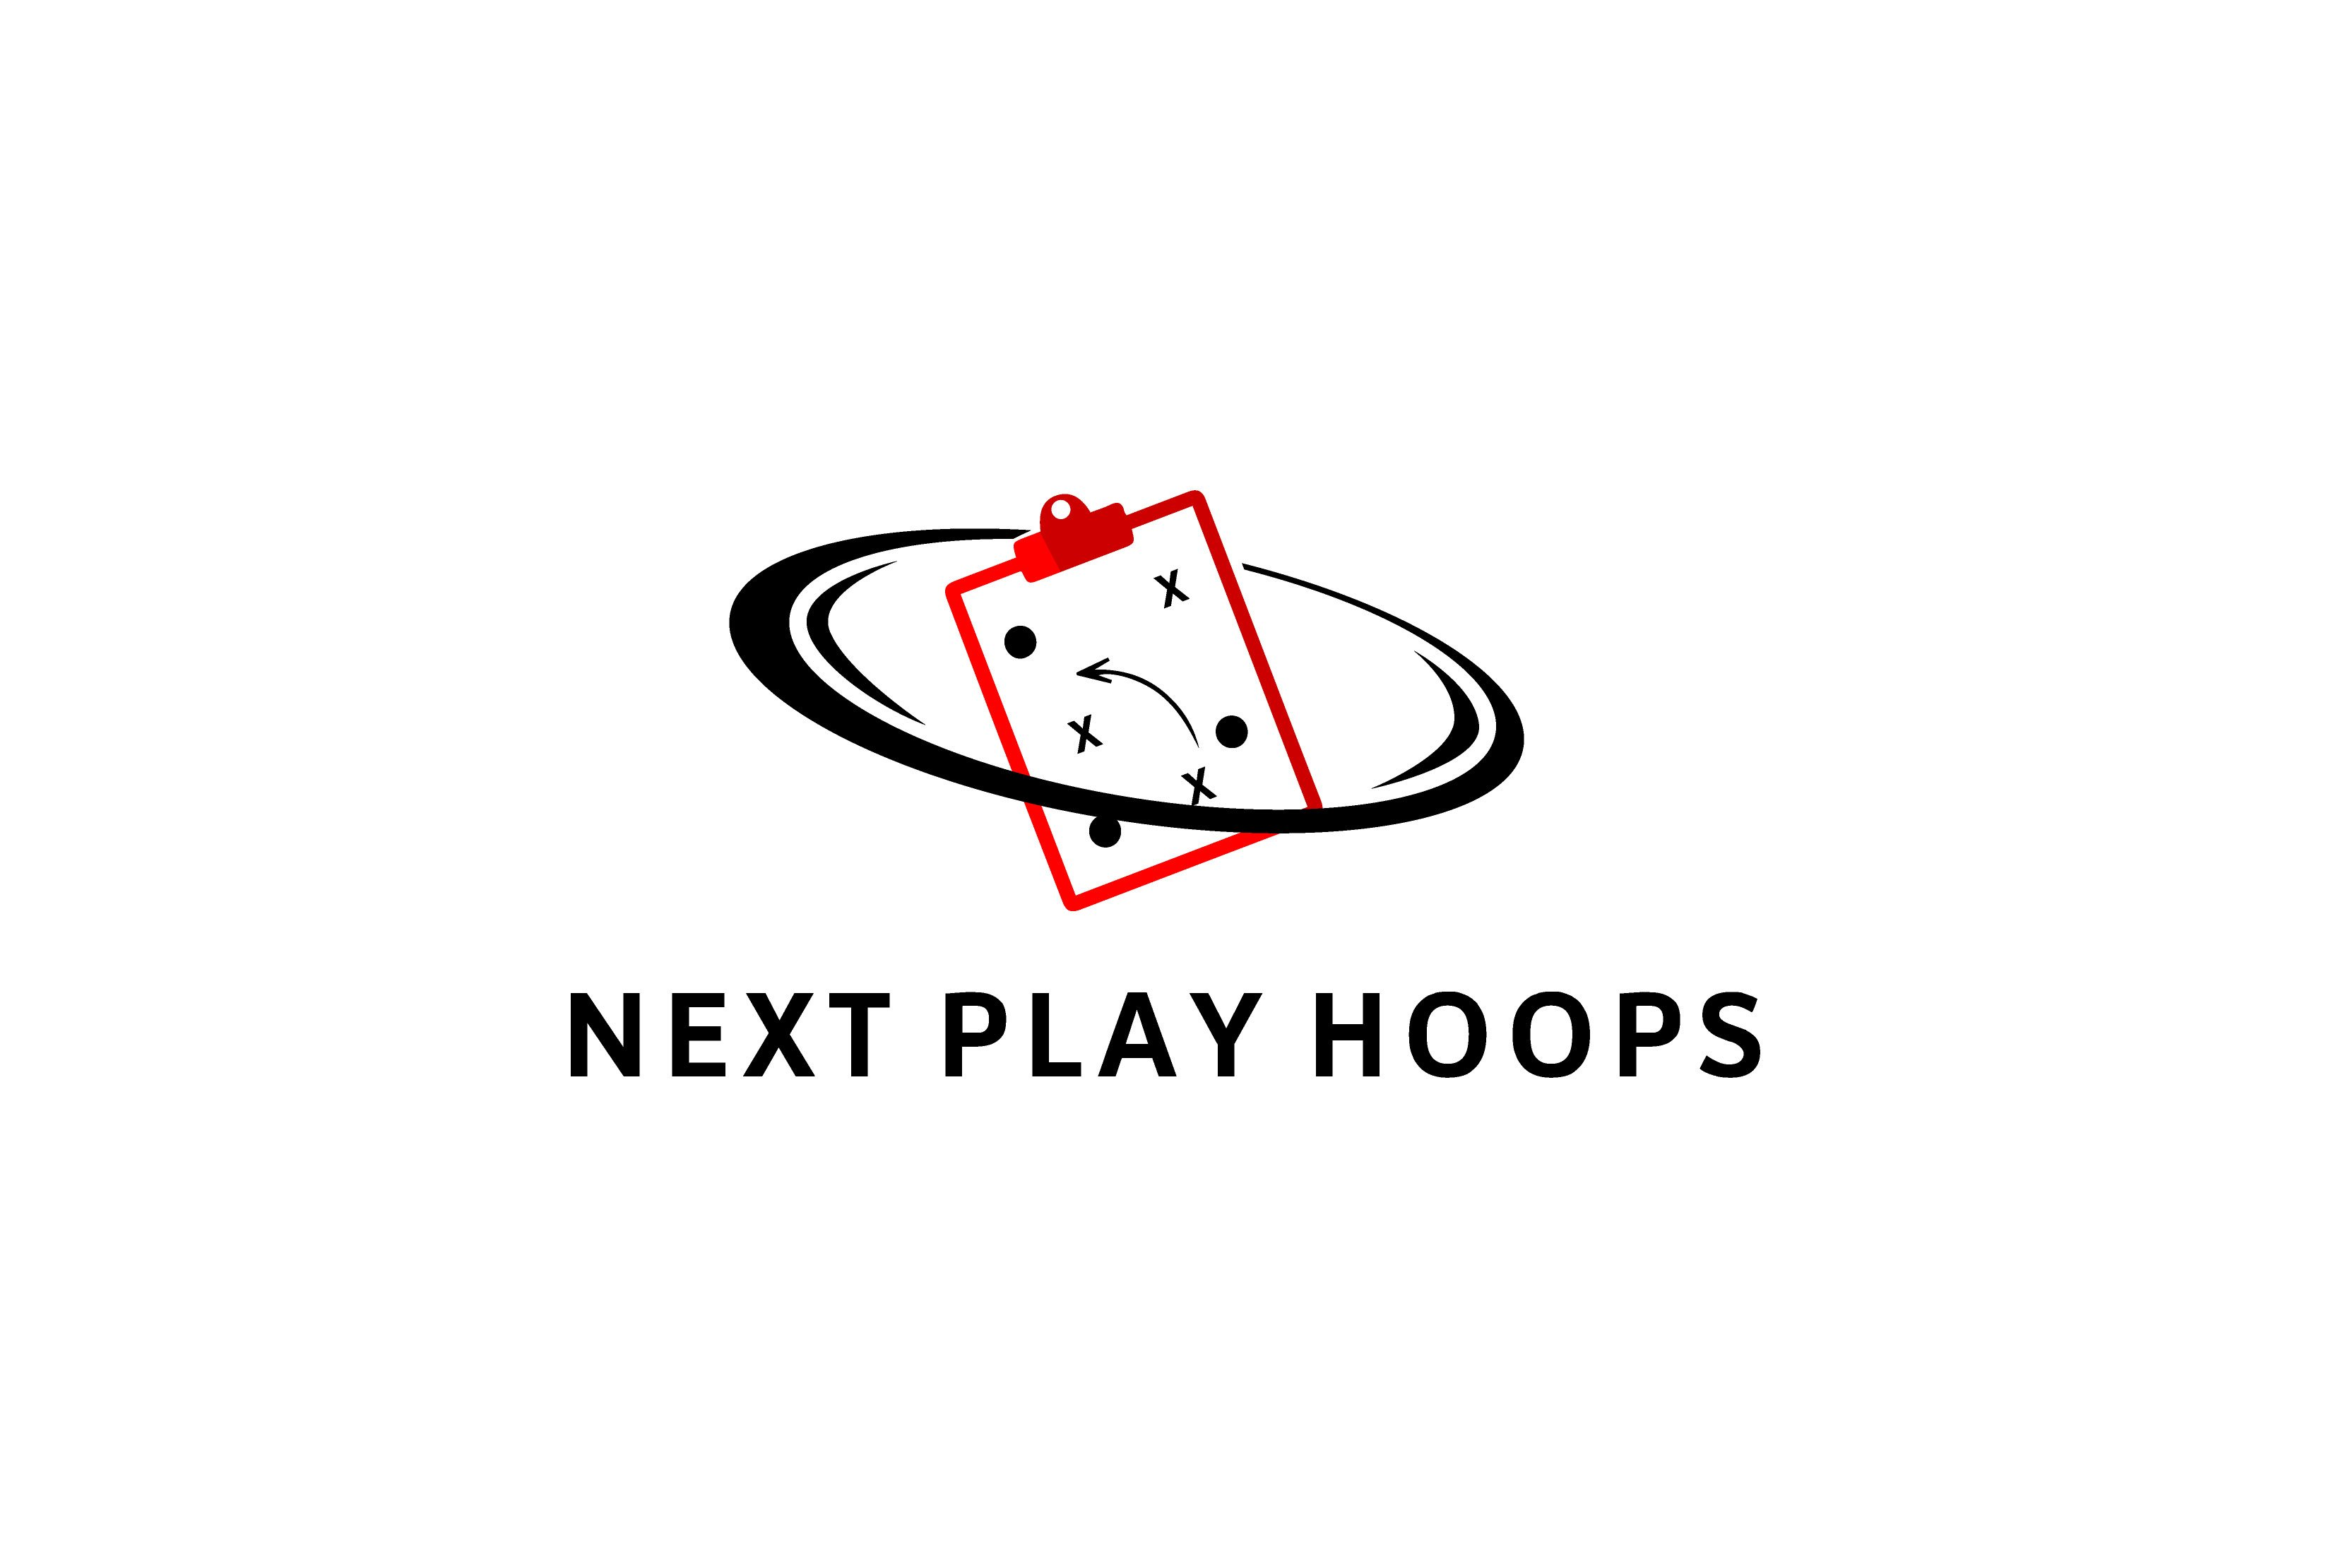 Next Play Hoops